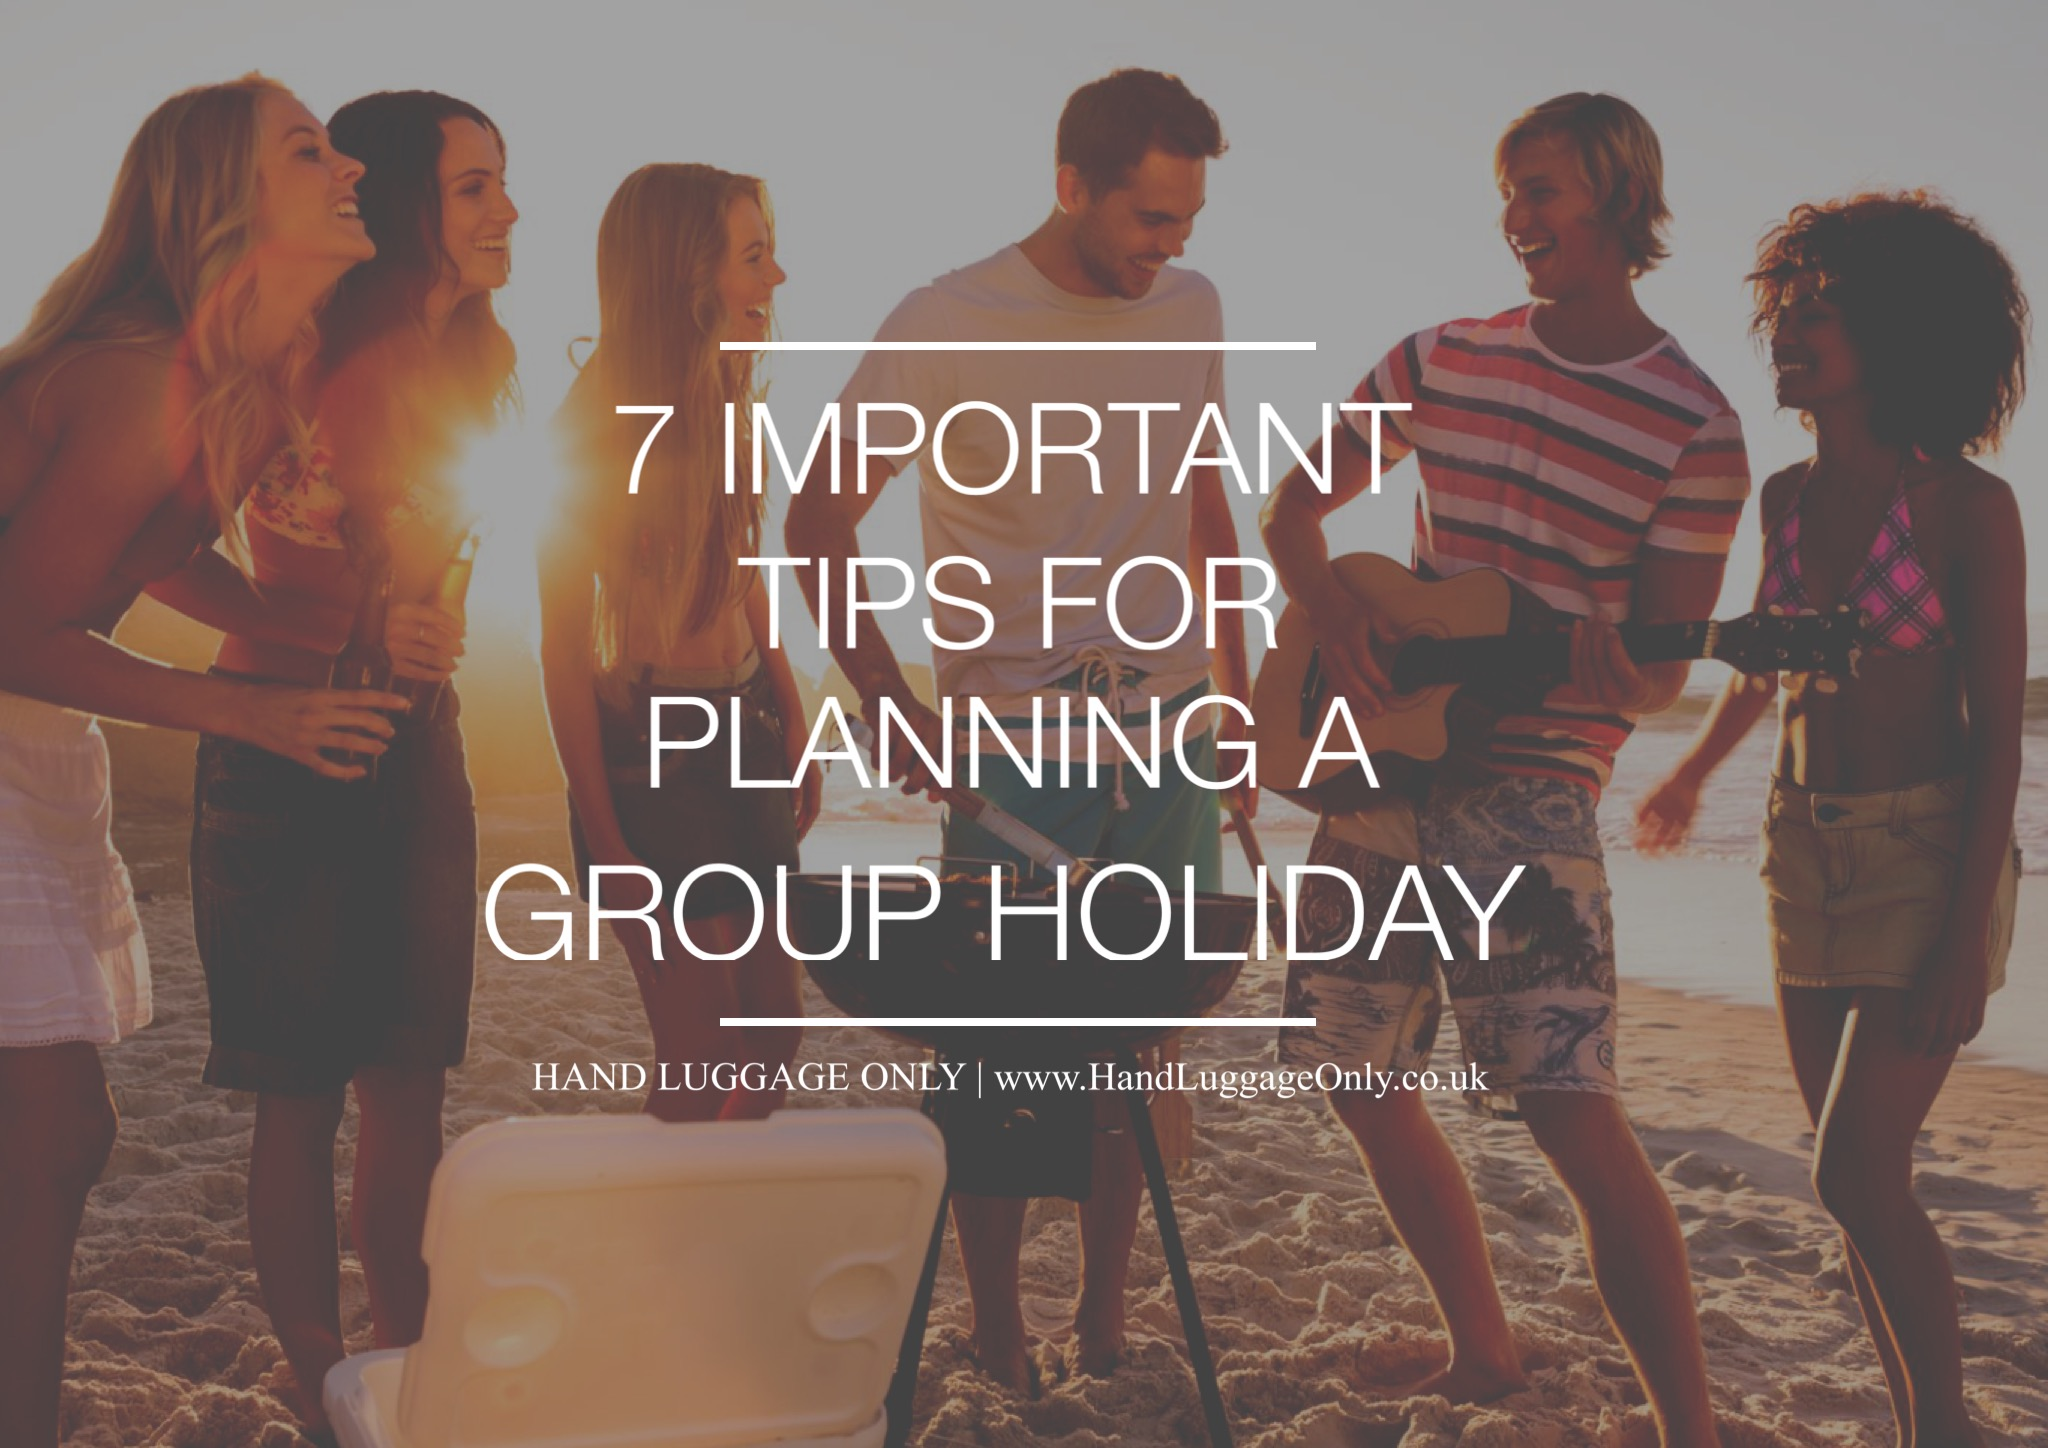 7 Important Tips For Planning A Group Holiday!